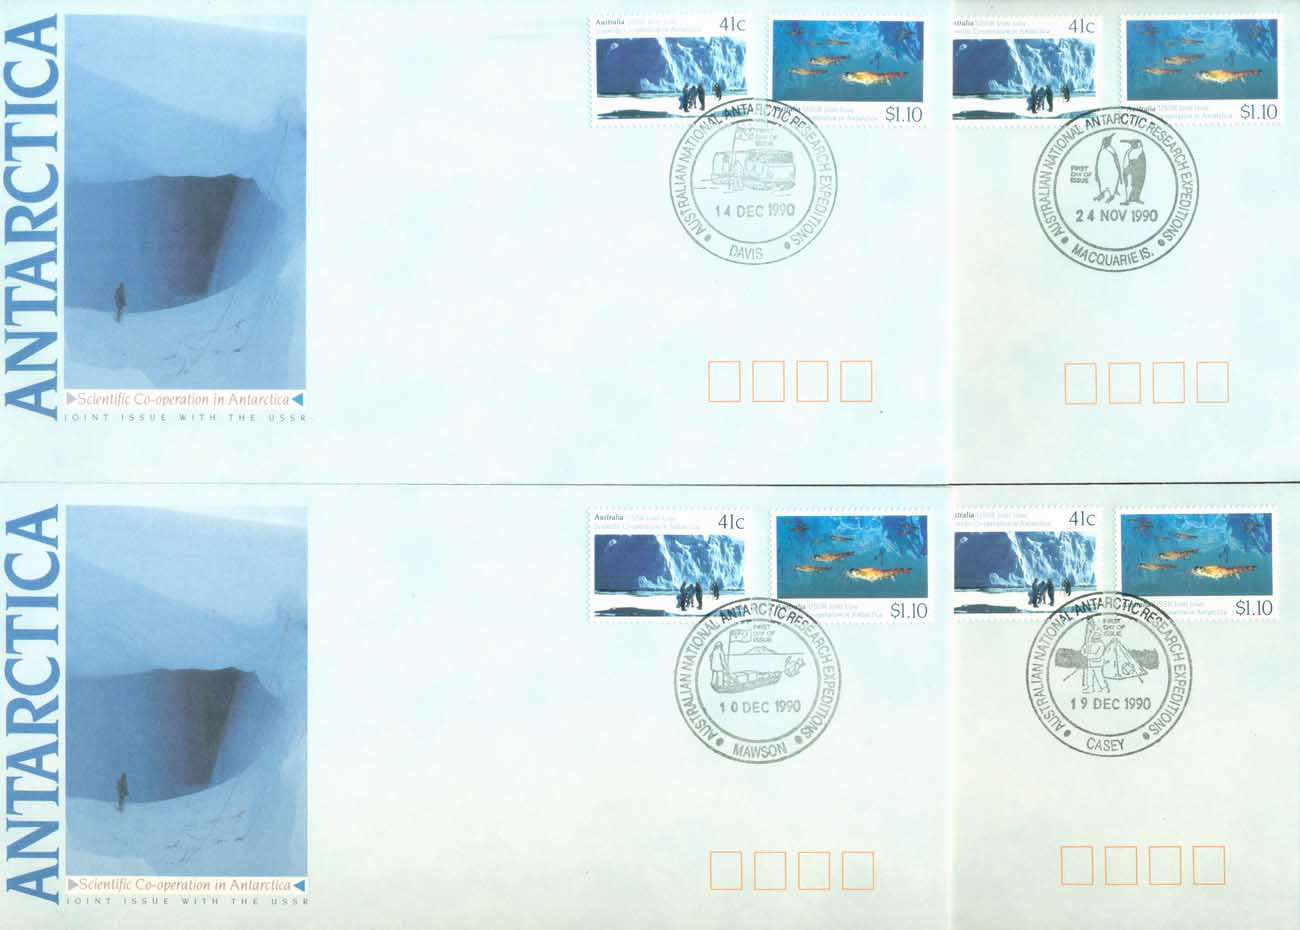 AAT 1990 Antarctic Research Base Set 4xFDC